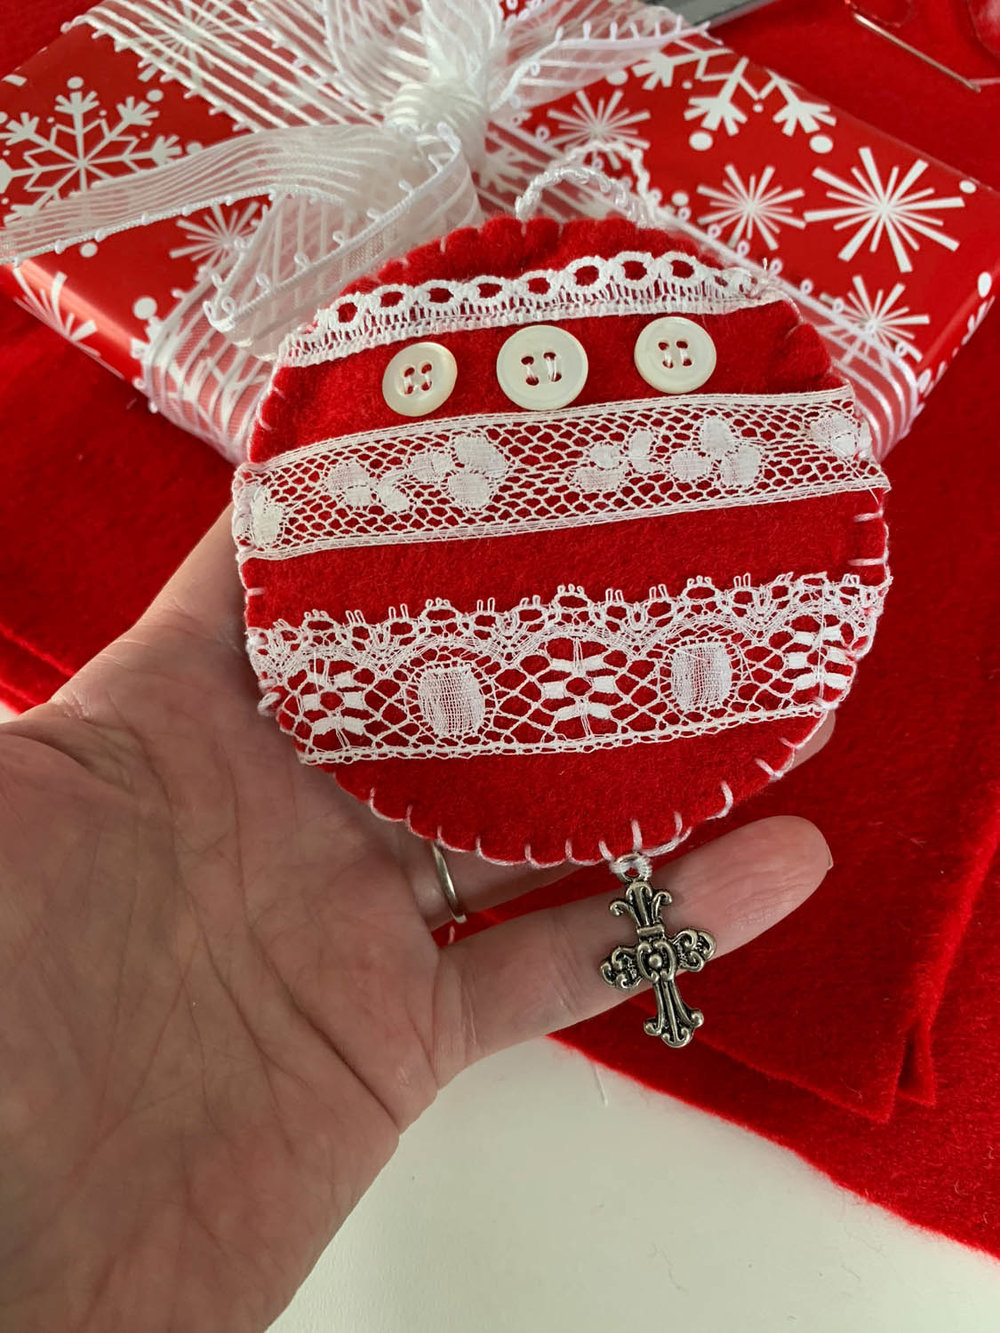 Red felt lace-embellished ornament decorating a gift wrapped box